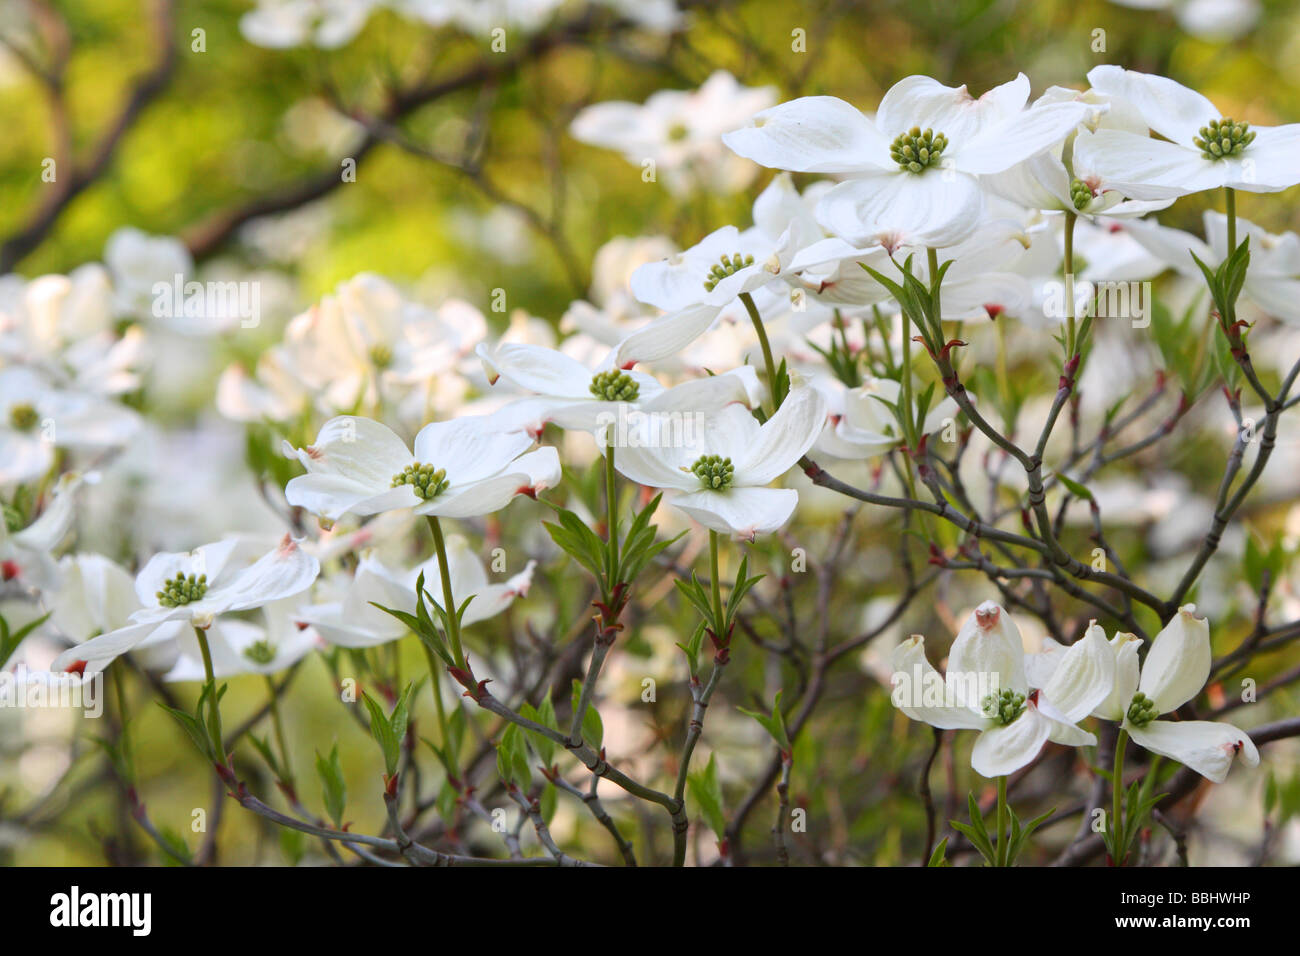 White dogwood flowers stock photos white dogwood flowers stock white dogwood flowers blooming cornus florida stock image mightylinksfo